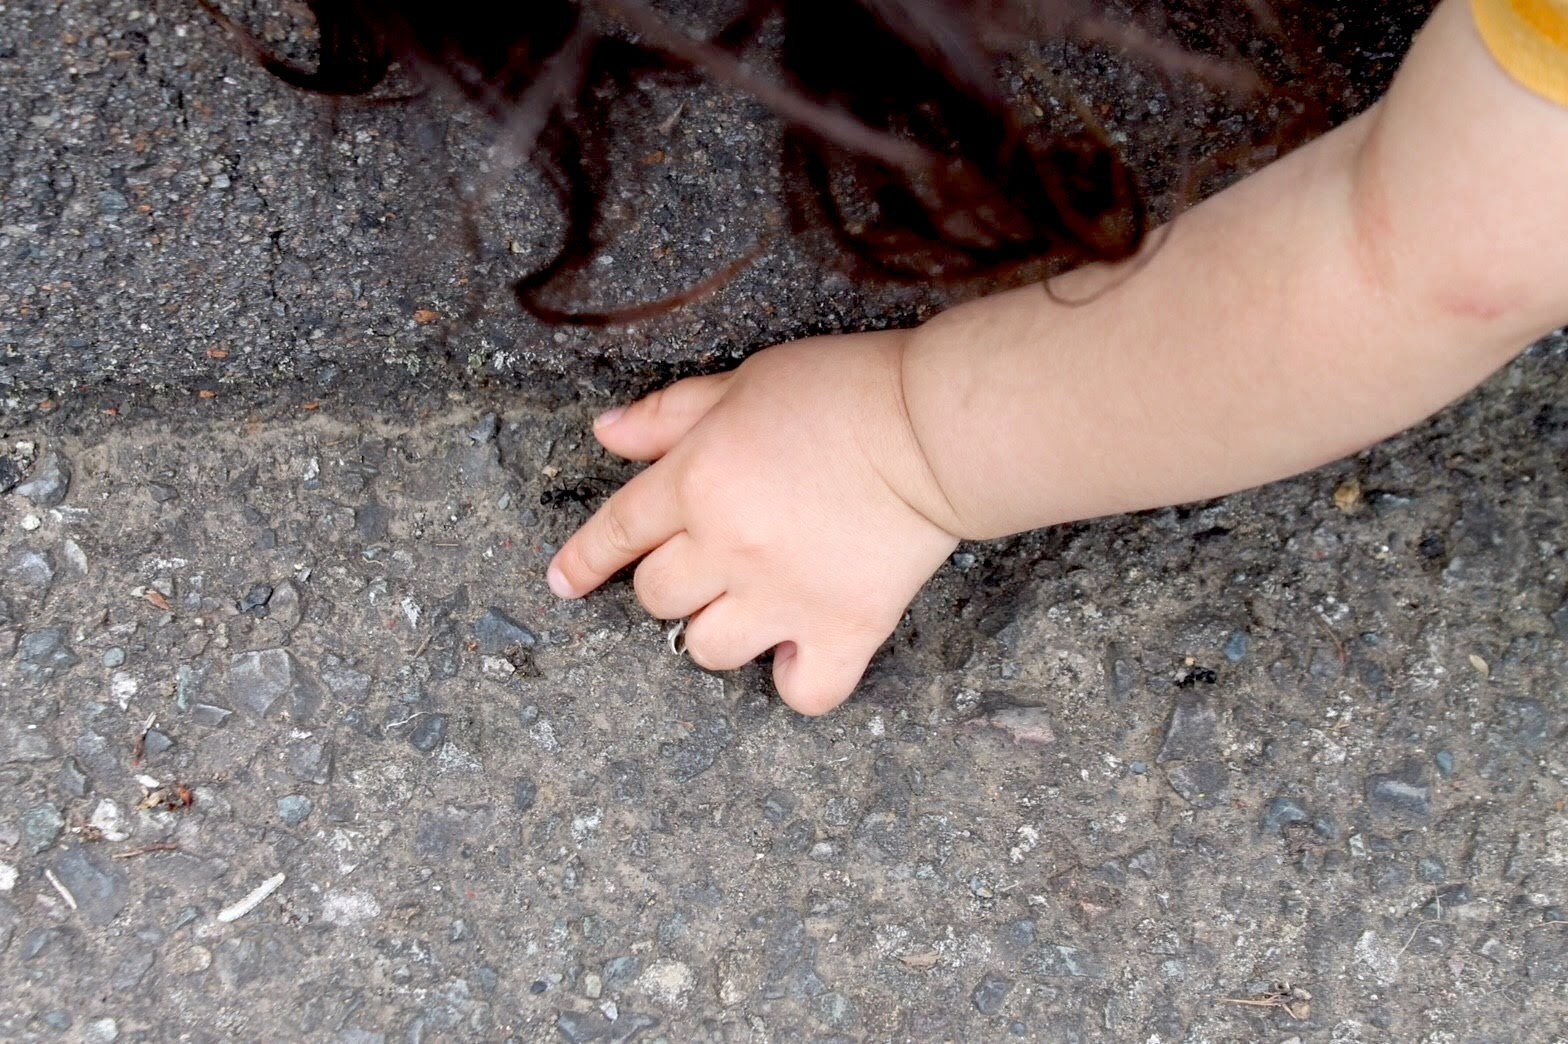 Photograph of a child trying to catch an ant.